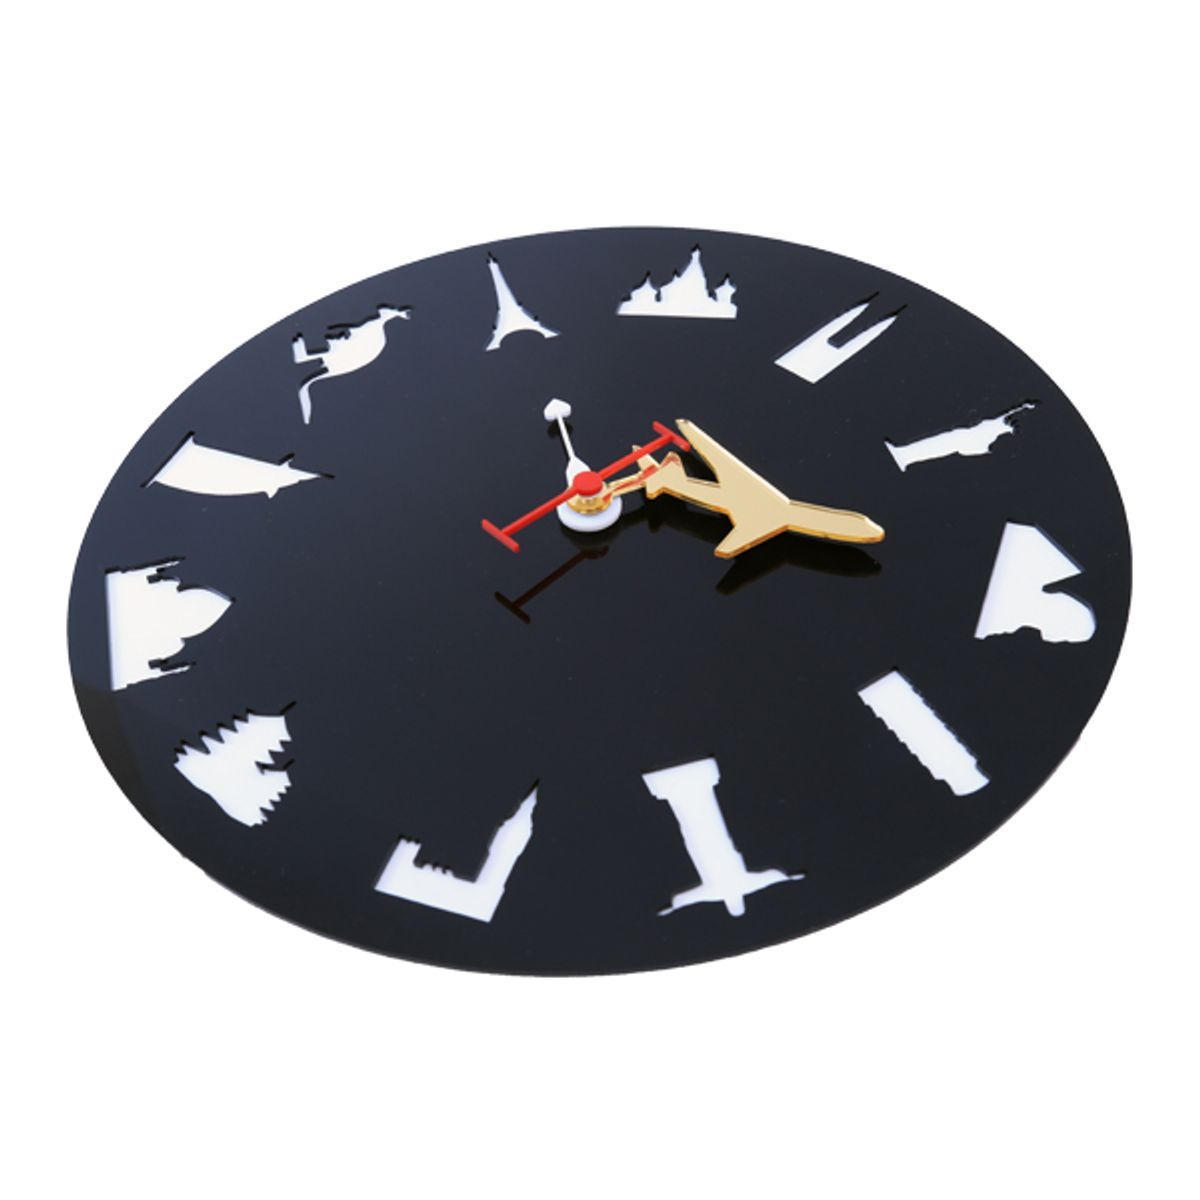 Wall Clock  I Love Travel  Unique Round Handmade Gift for Travel Lovers